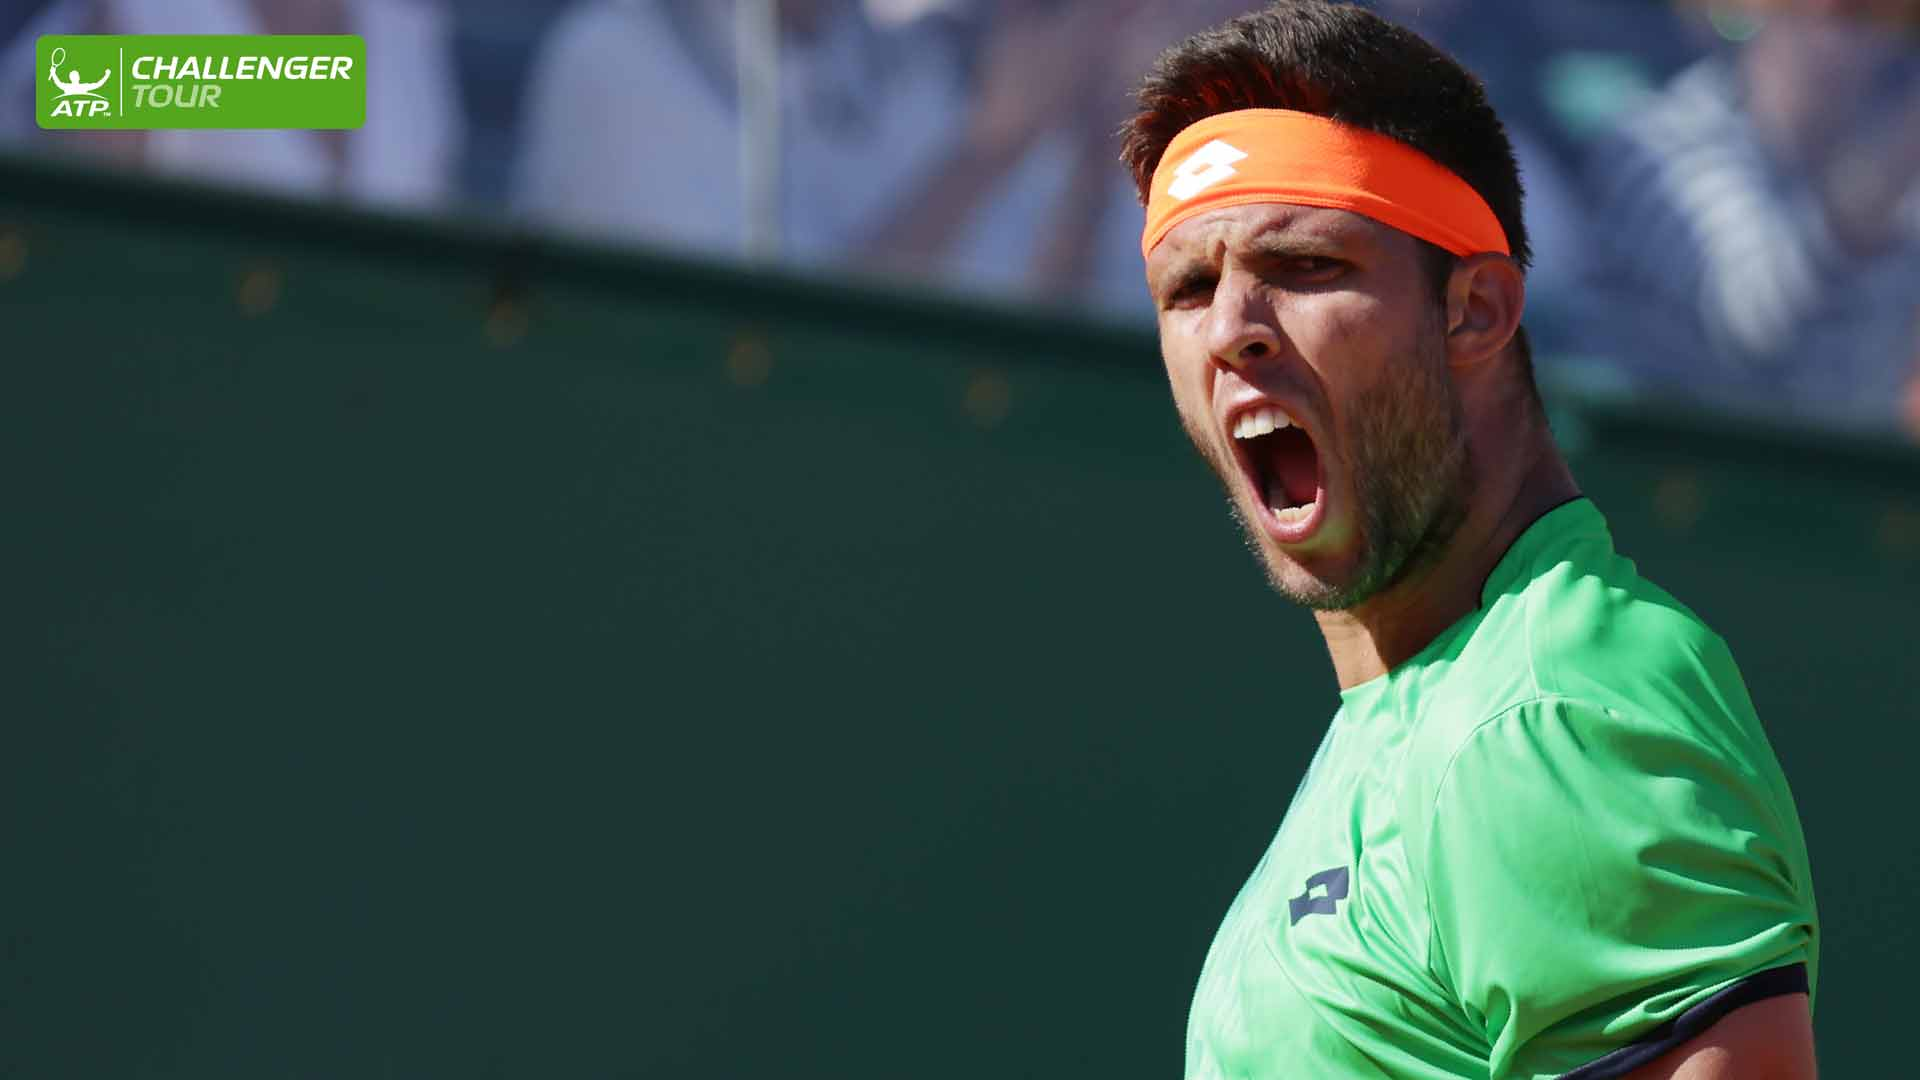 Jiri Vesely is balancing Challengers with ATP World Tour events in 2016.